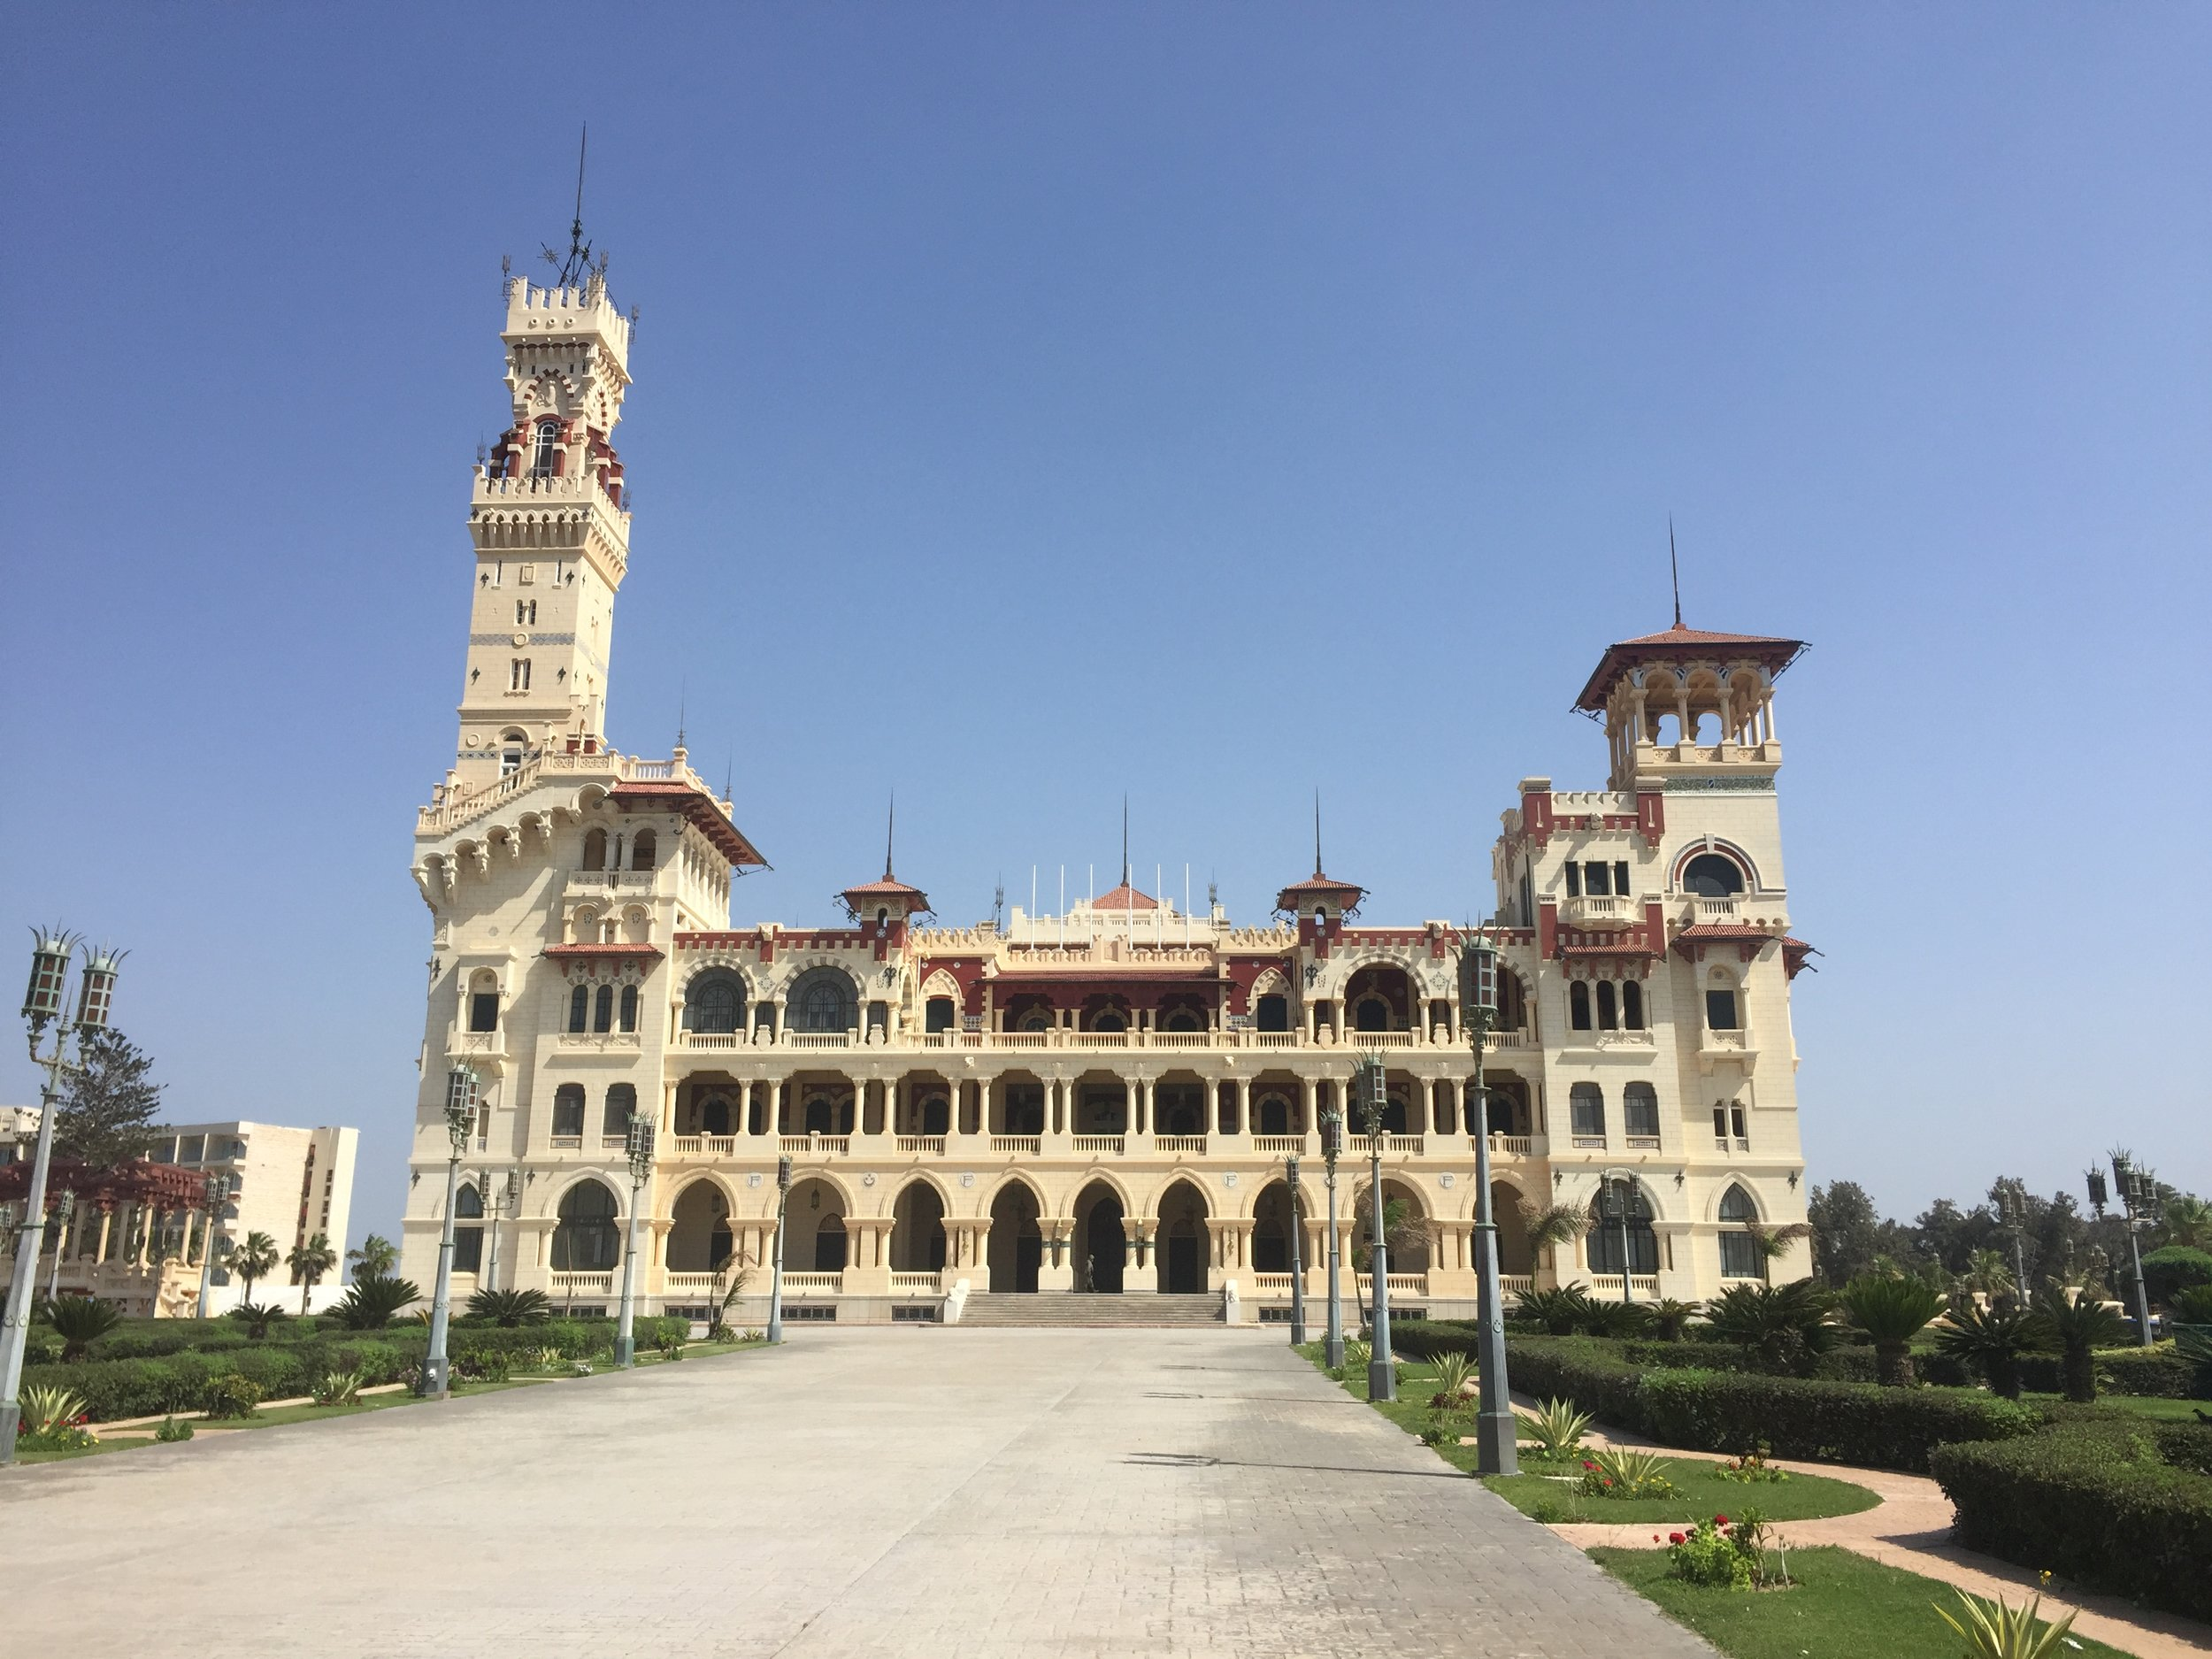 The king's summer palace in Alexandria.